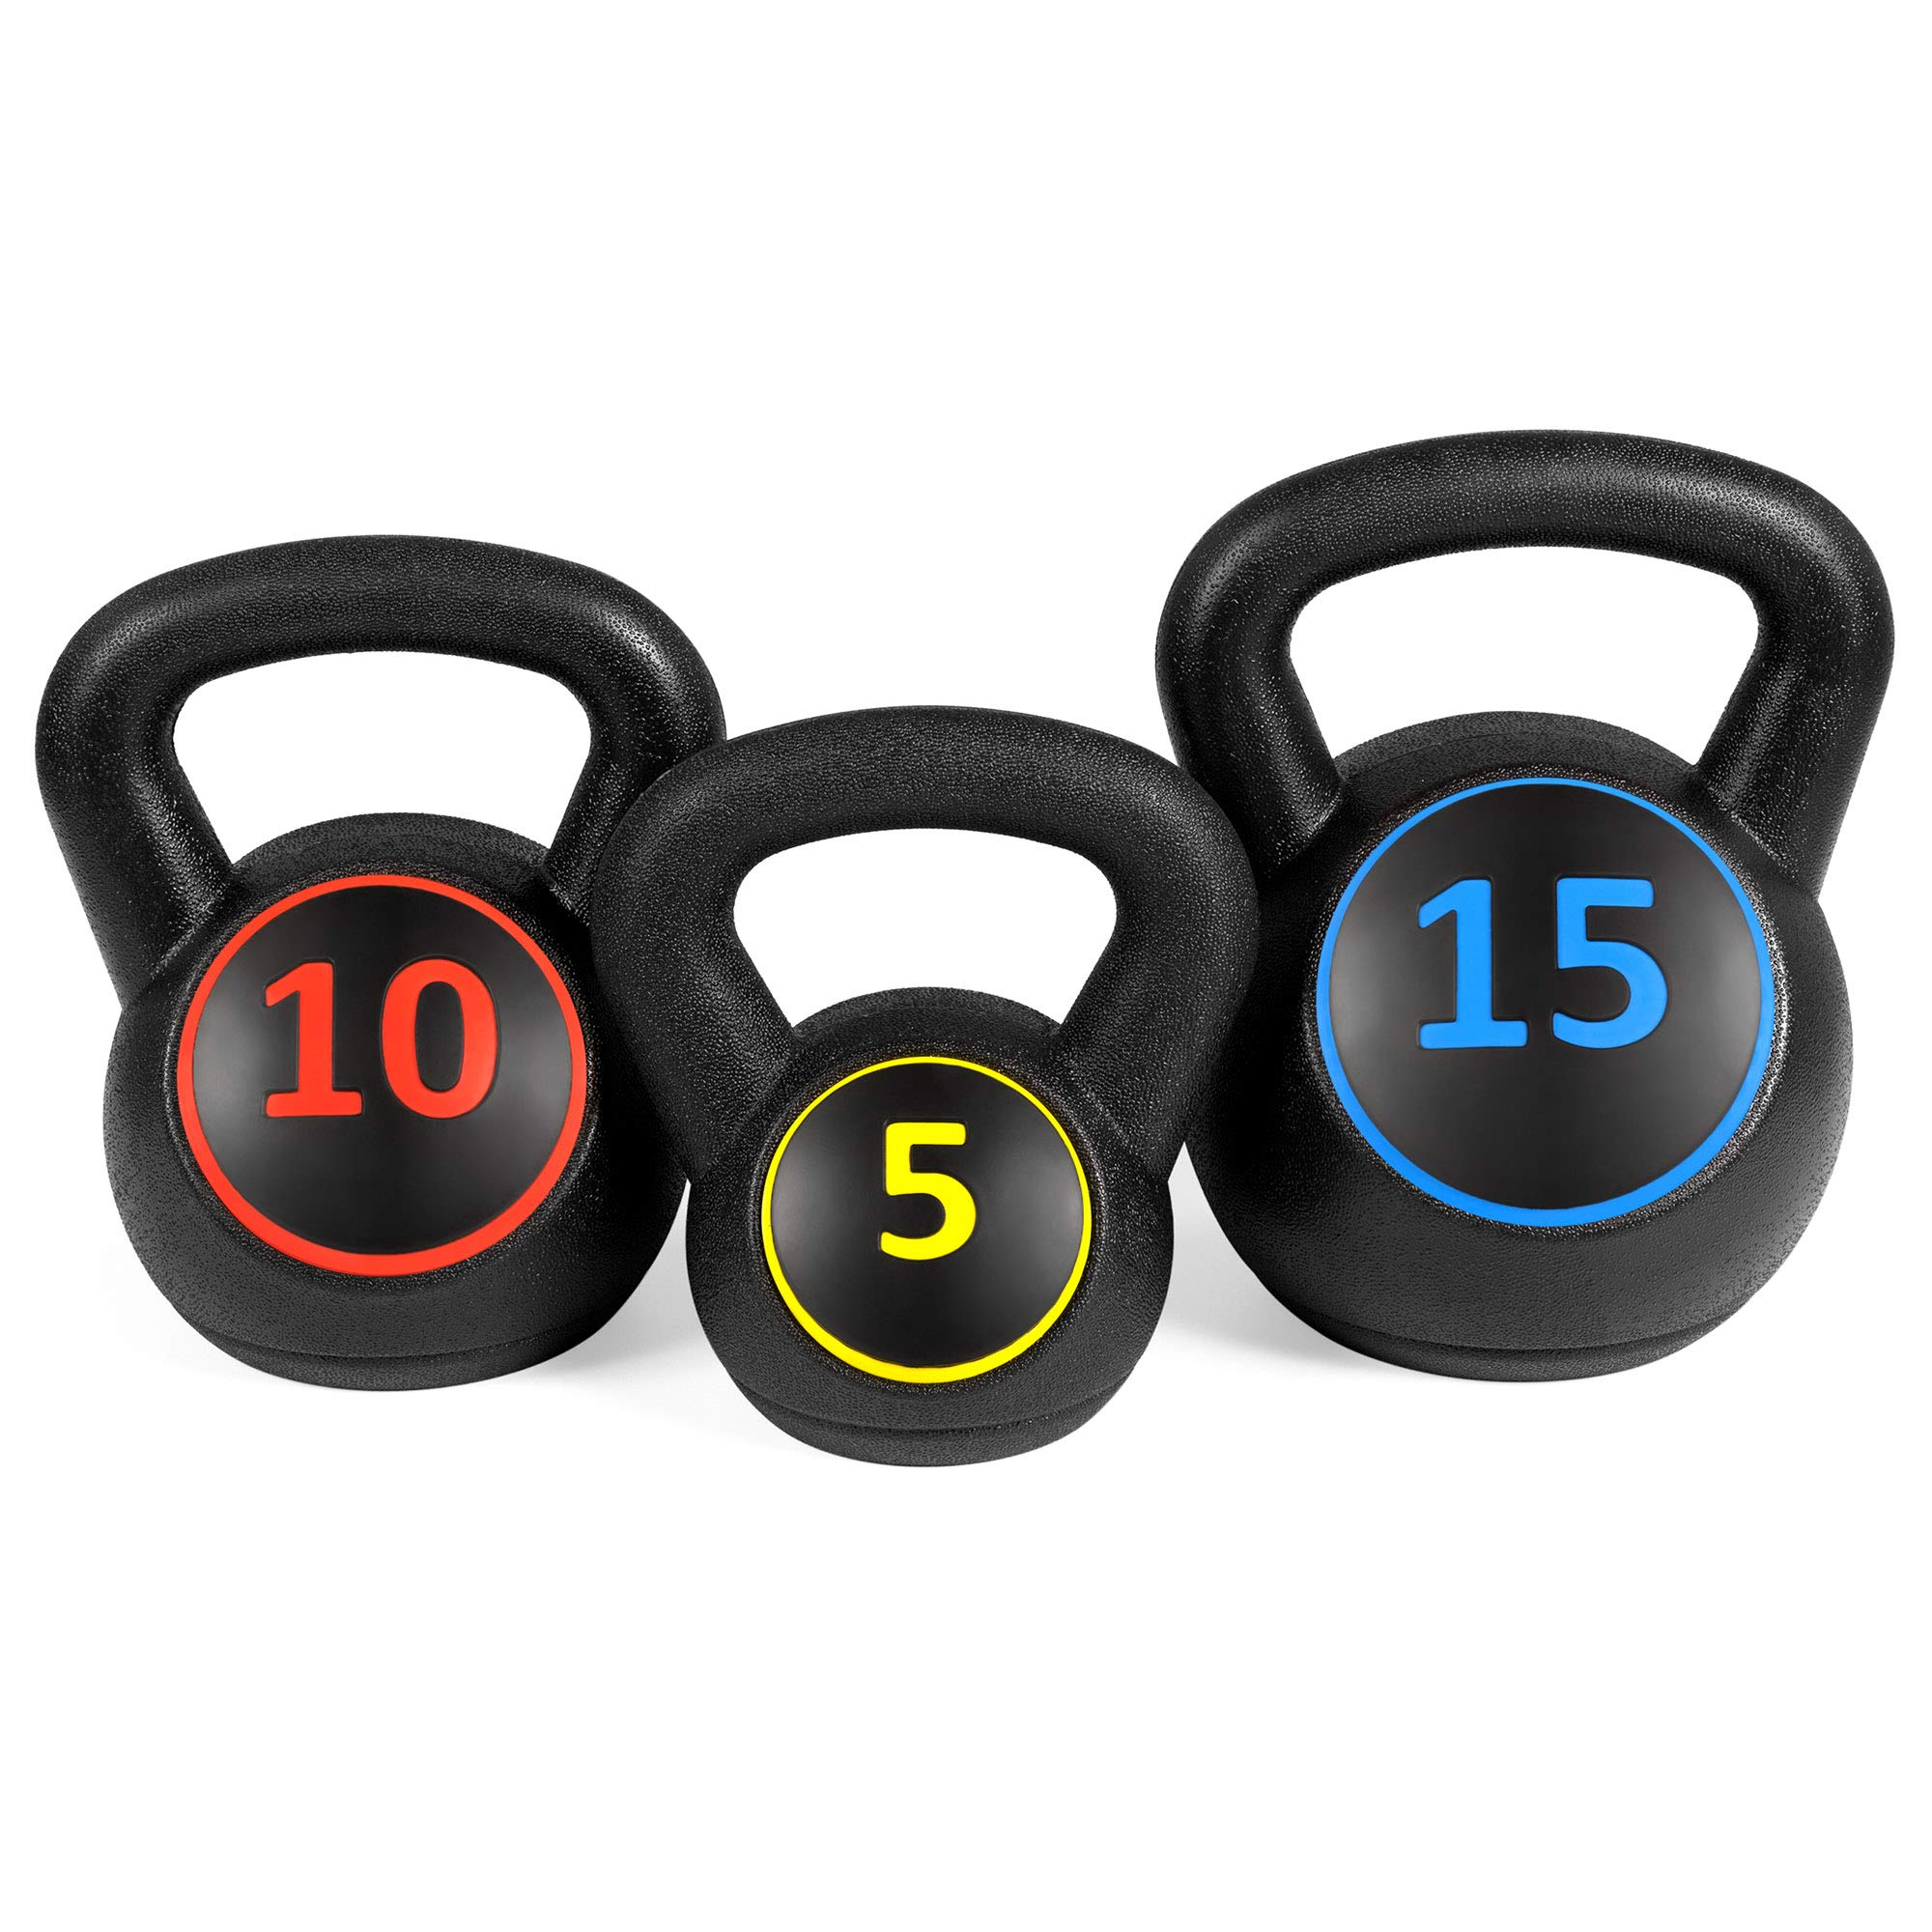 Best Choice Products 3-Piece HDPE Kettlebell Exercise Fitness Weight Set for Full Body Workout w/ 5lb, 10lb, 15lb Weights, Wide Grips, Base Rack - Black by Best Choice Products (Image #3)